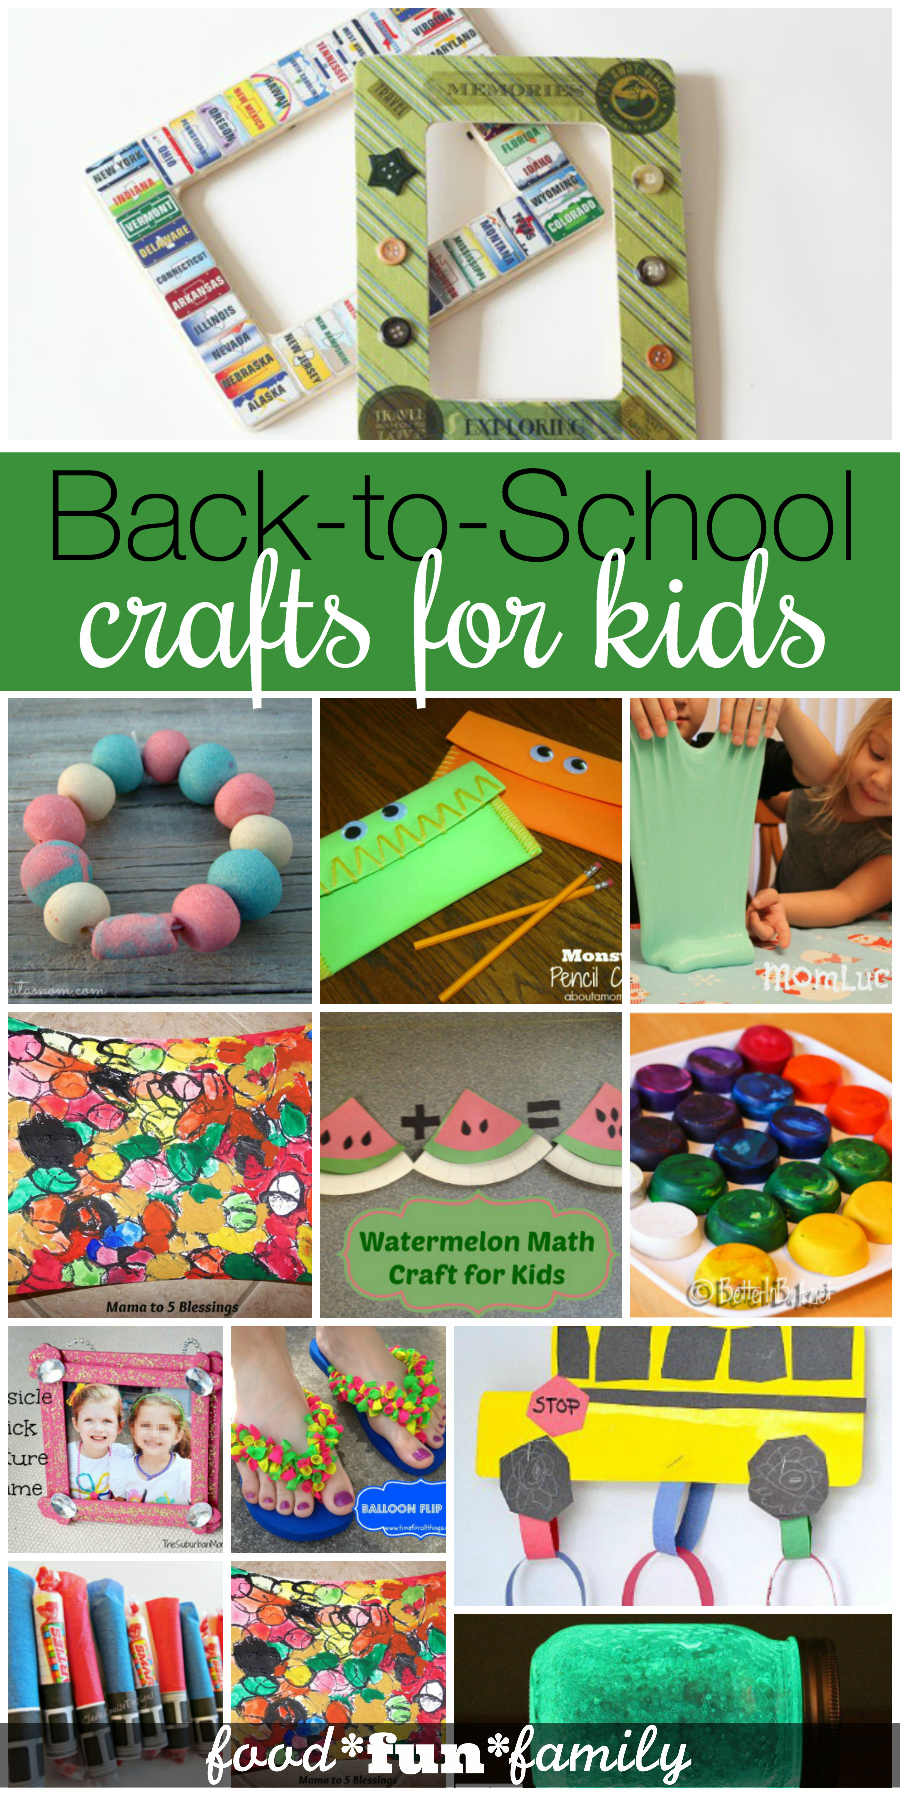 Back to School crafts for kids - a collection of fun school-inspired projects that kids can do on their own